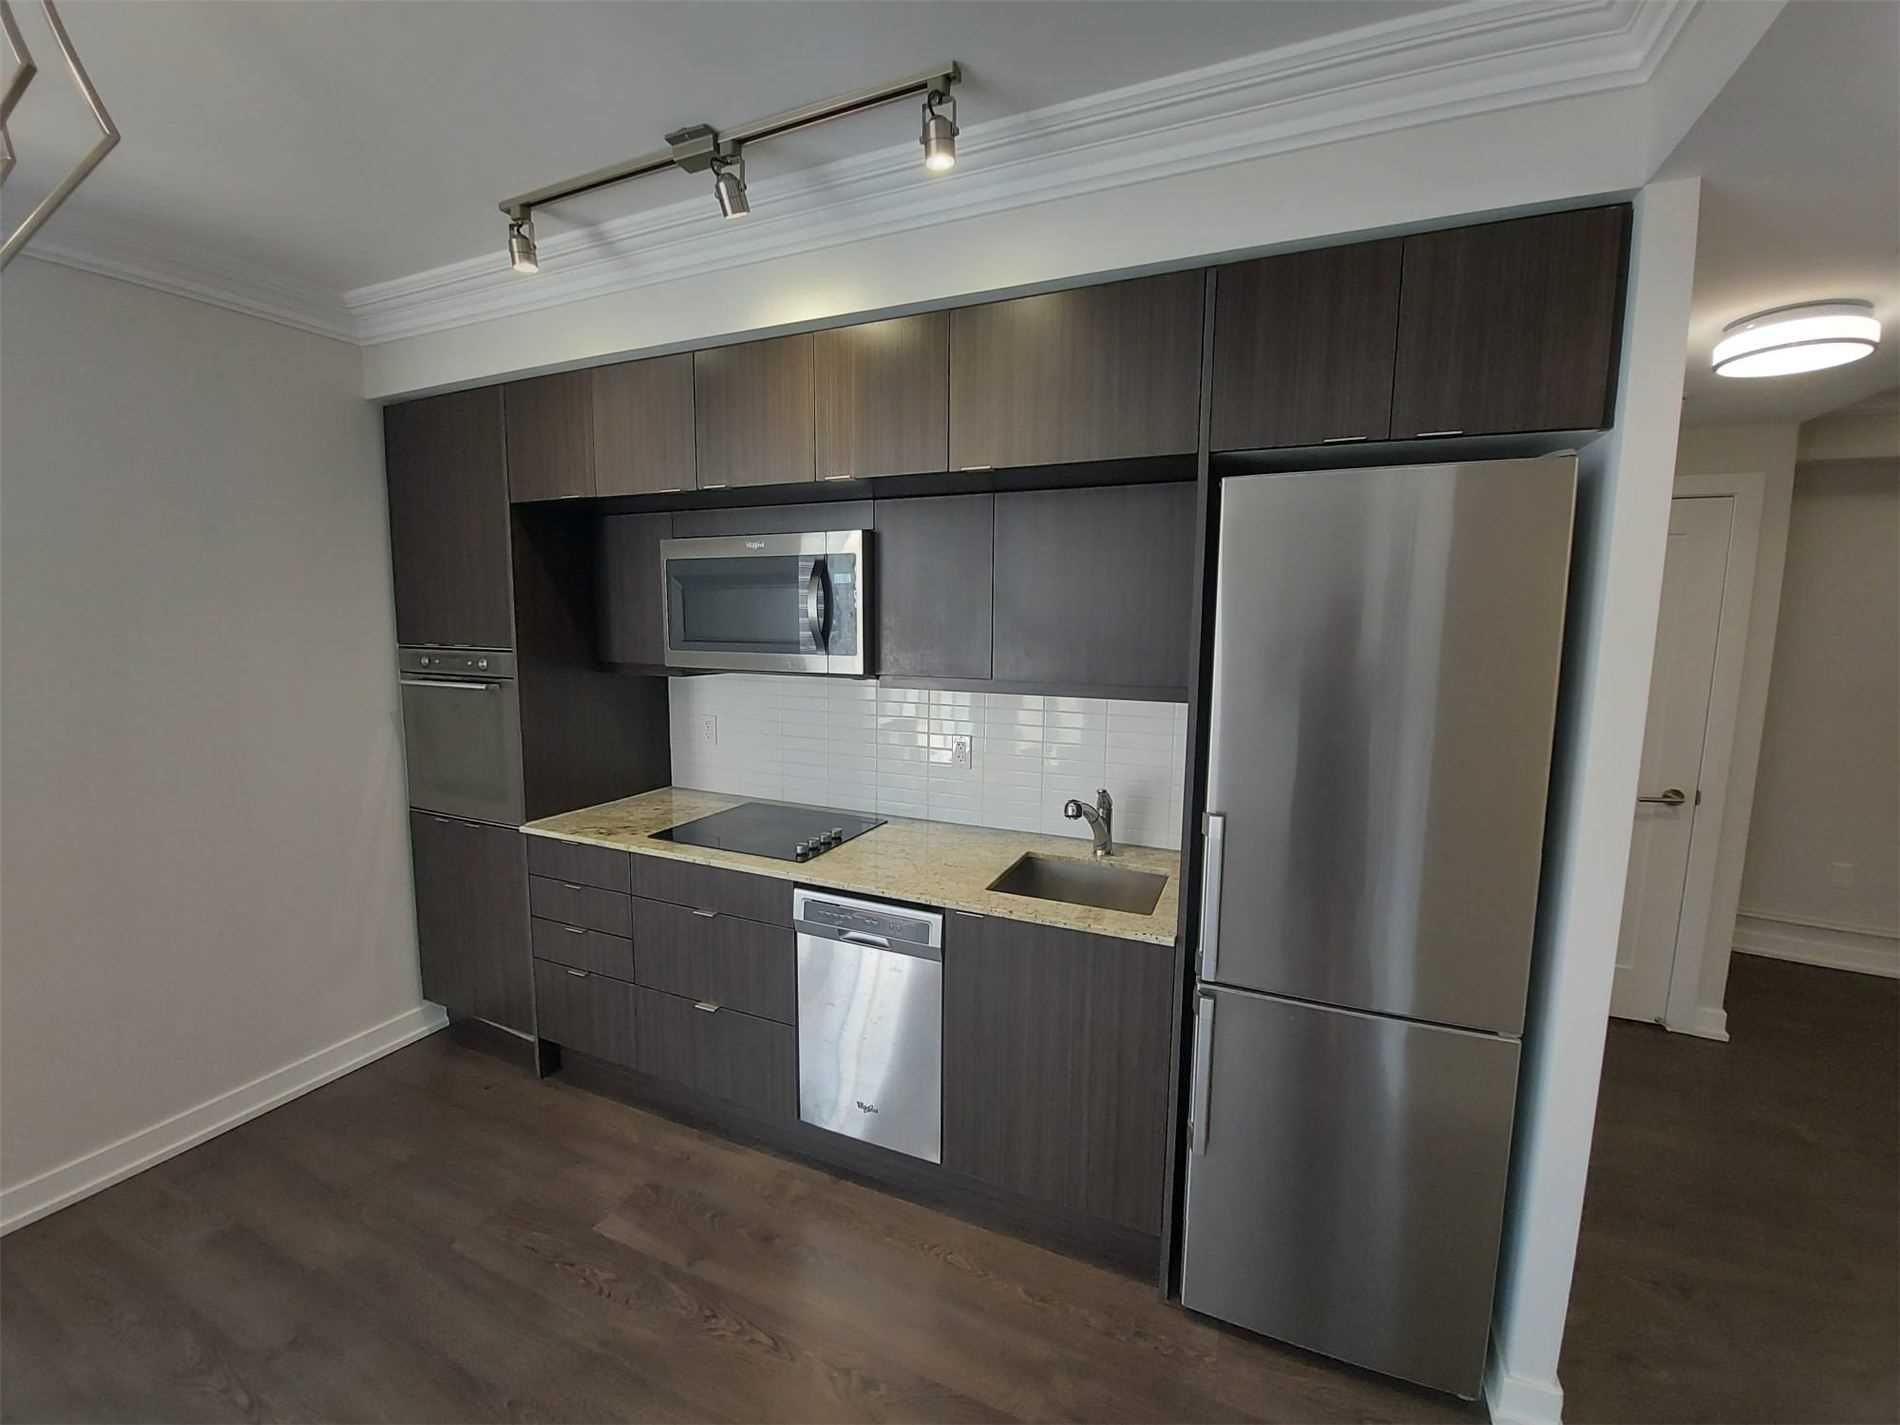 10 York St, unit 2303 for rent in Toronto - image #2